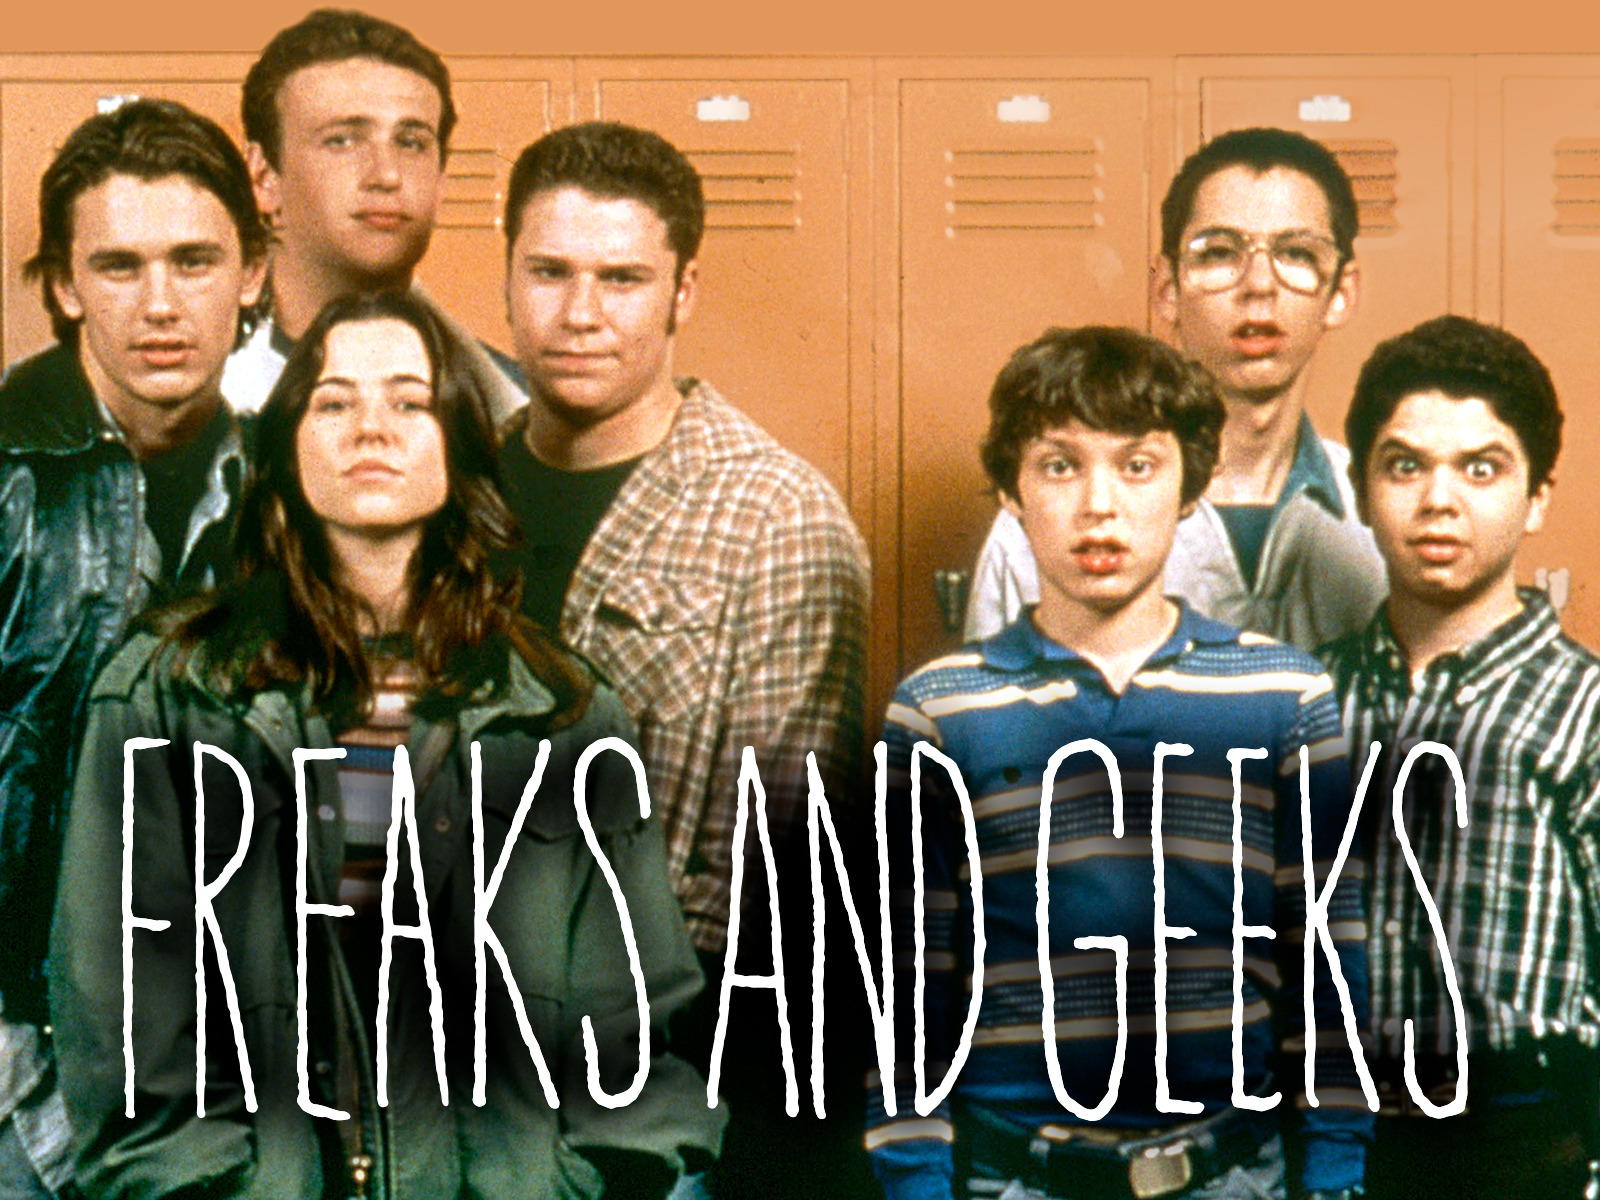 21 Disappointing TV Shows That Had Potential Prime Video: Freaks and Geeks